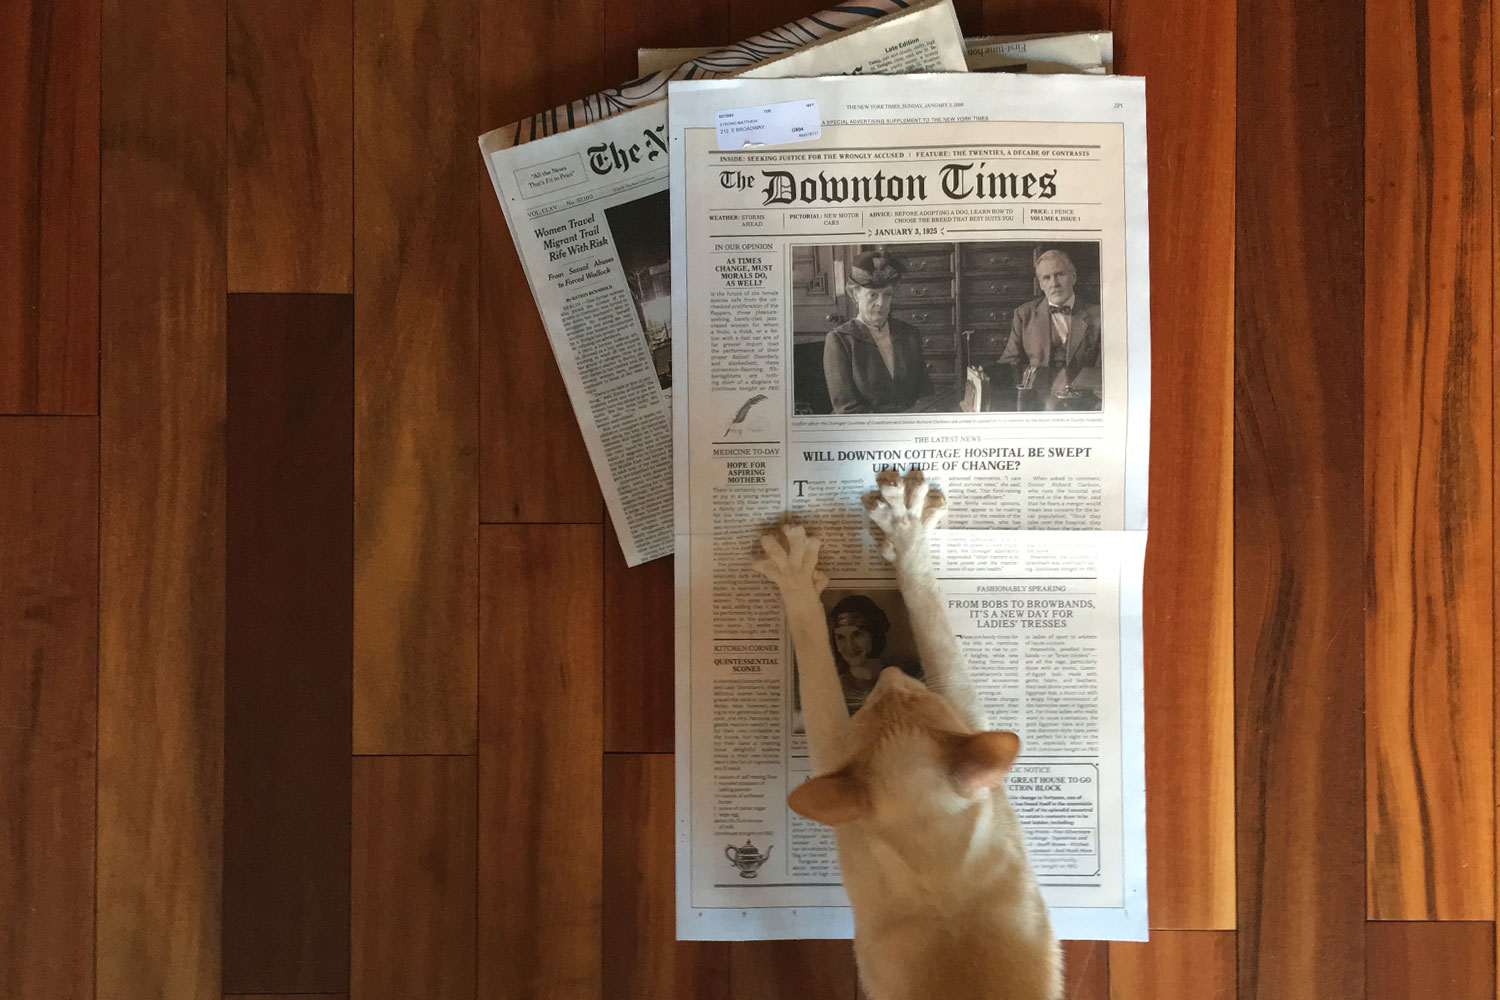 Copy of The New York Times, Print, Newspaper, The Downton Times